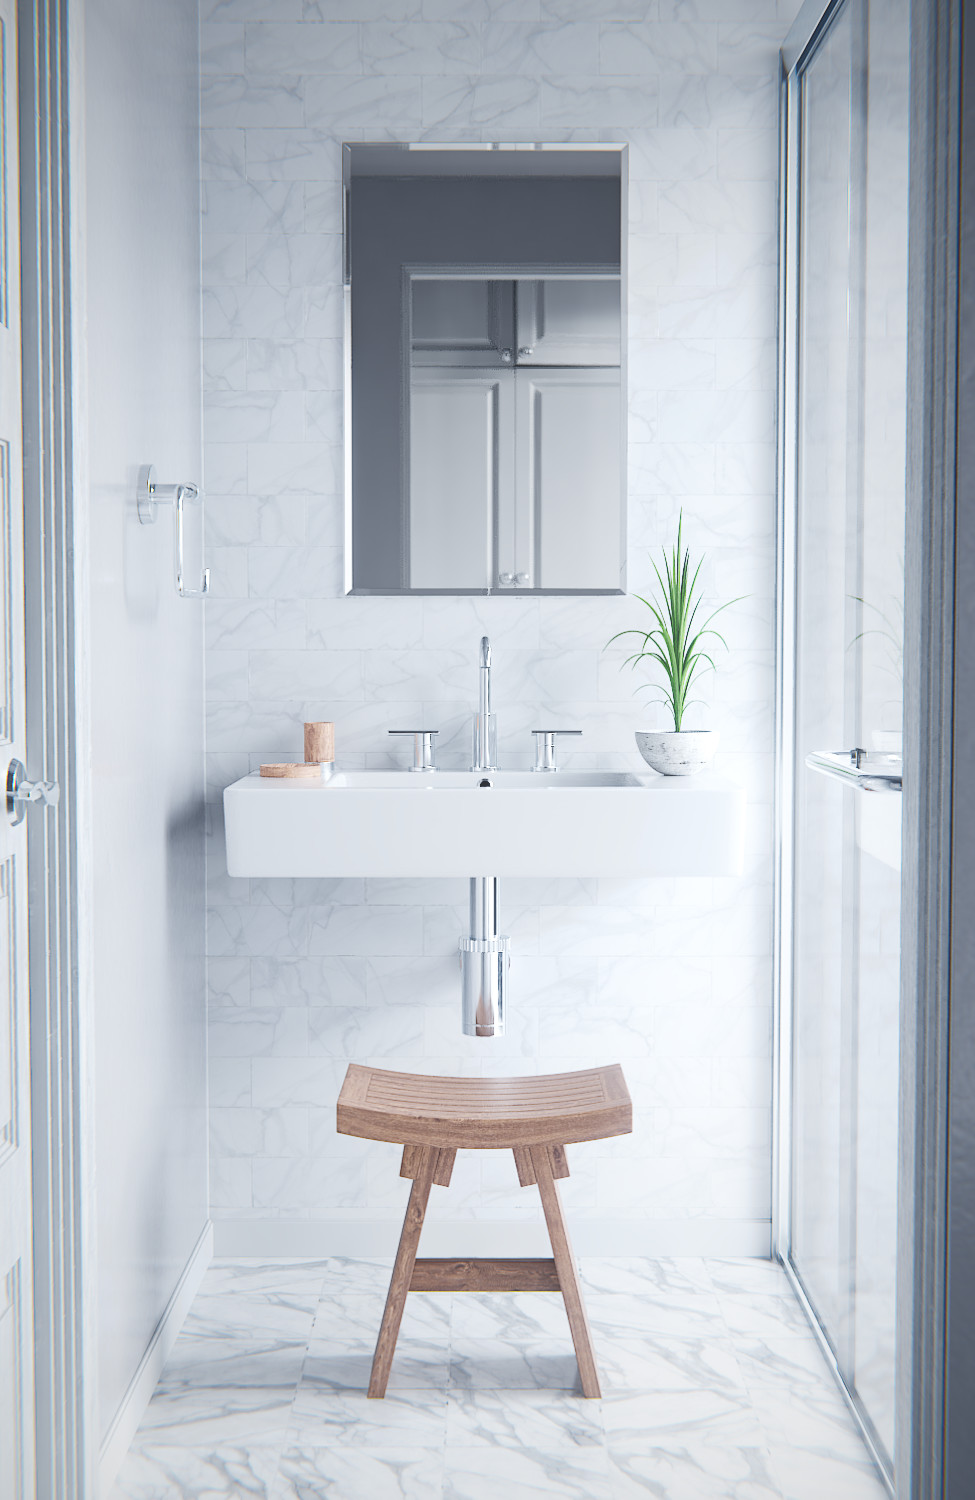 A clean, white bathroom, but still enough character to be interesting.Created by  Michał Demps using the new Marble materials. Made with Blender.